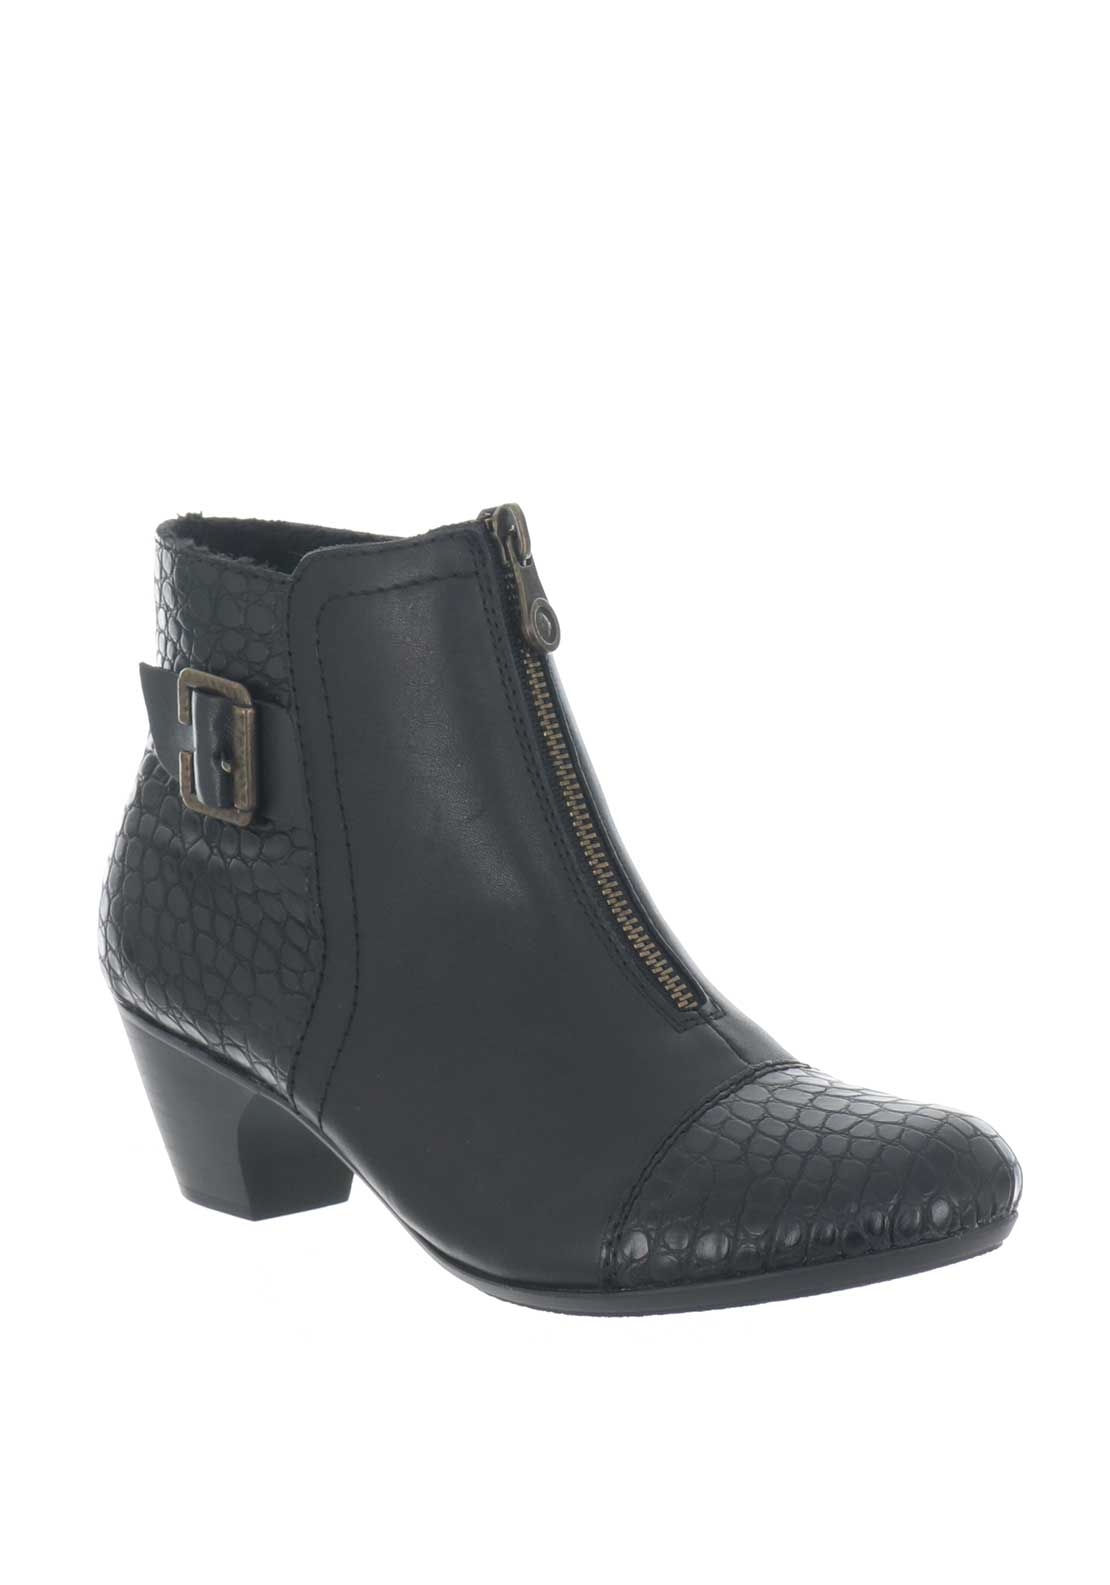 Rieker Womens Leather Reptile Zip Boots, Black